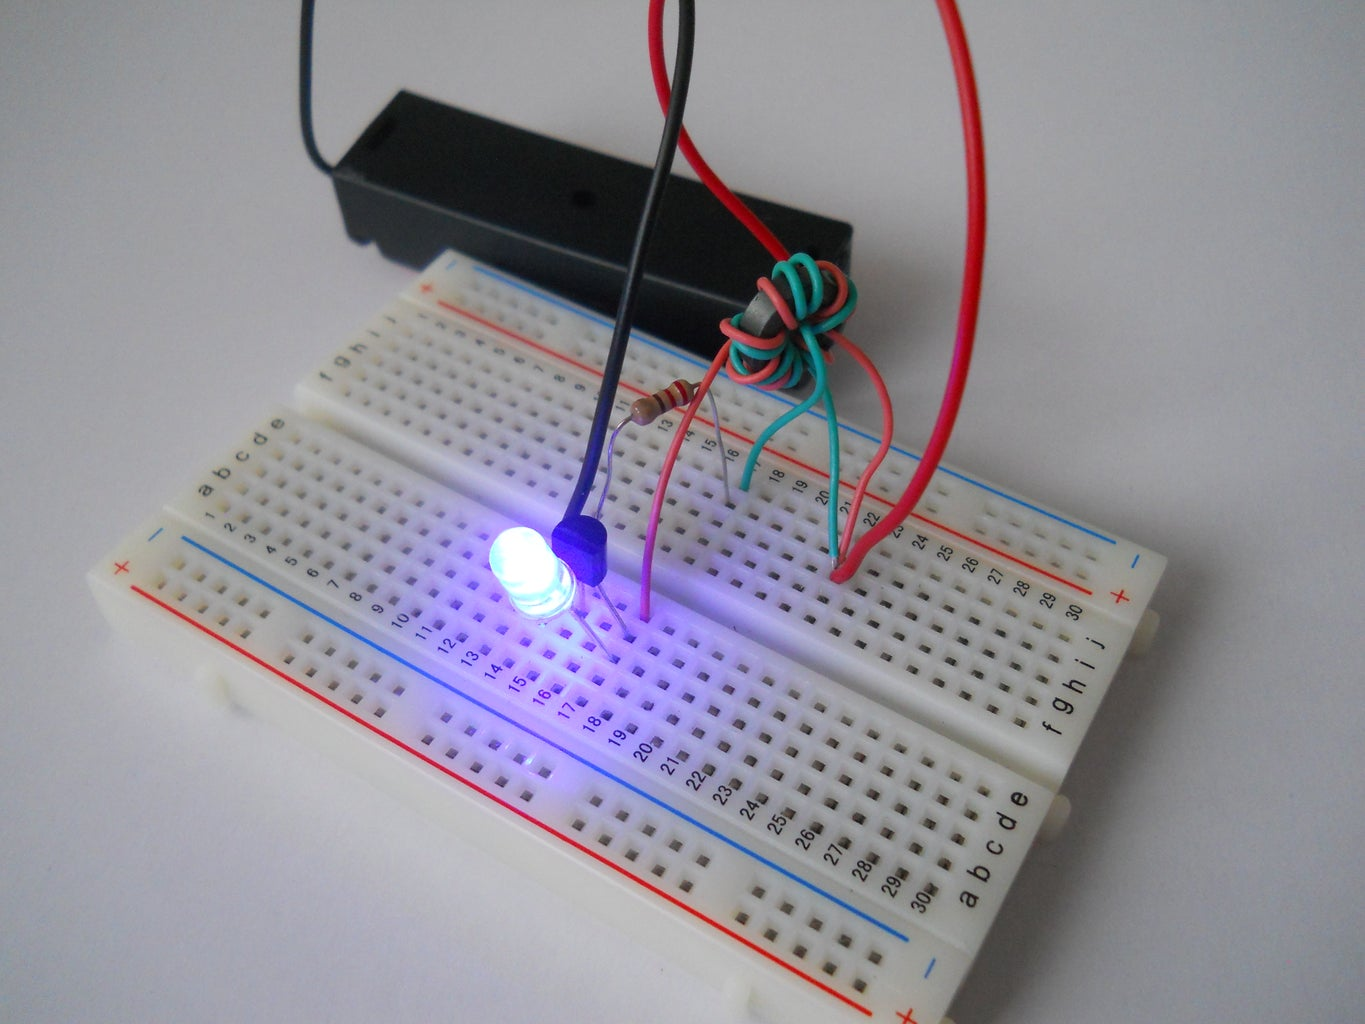 Prototyping on Breadboard and Creating the Inductor